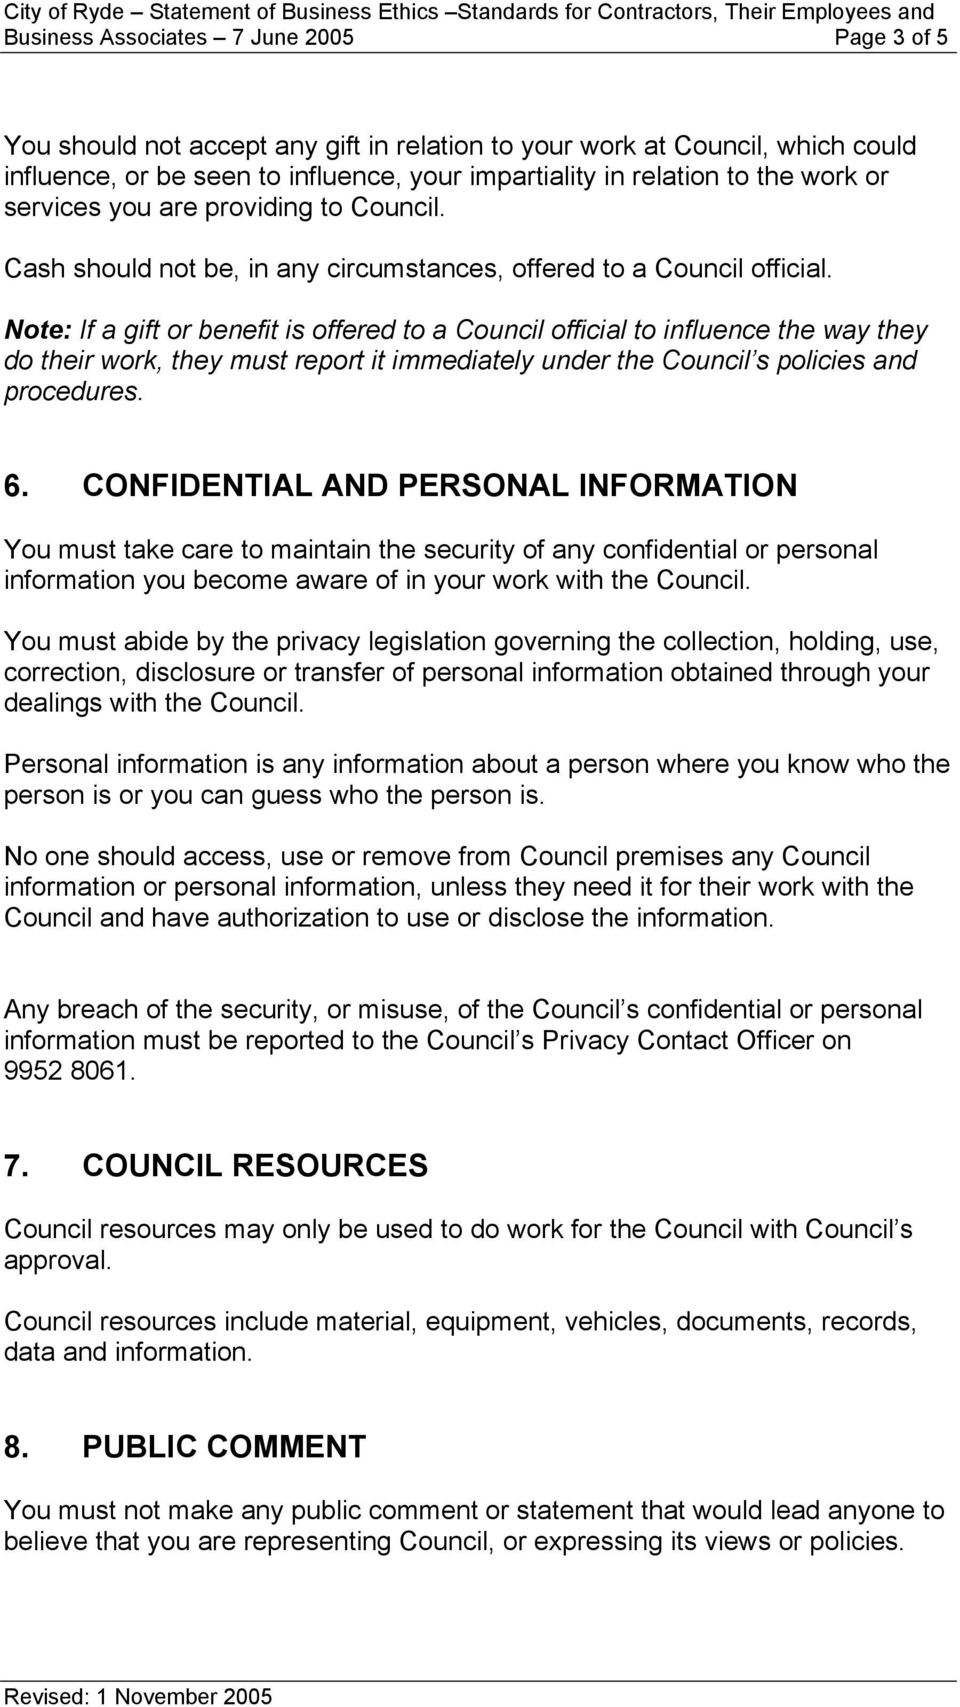 Note: If a gift or benefit is offered to a Council official to influence the way they do their work, they must report it immediately under the Council s policies and procedures. 6.